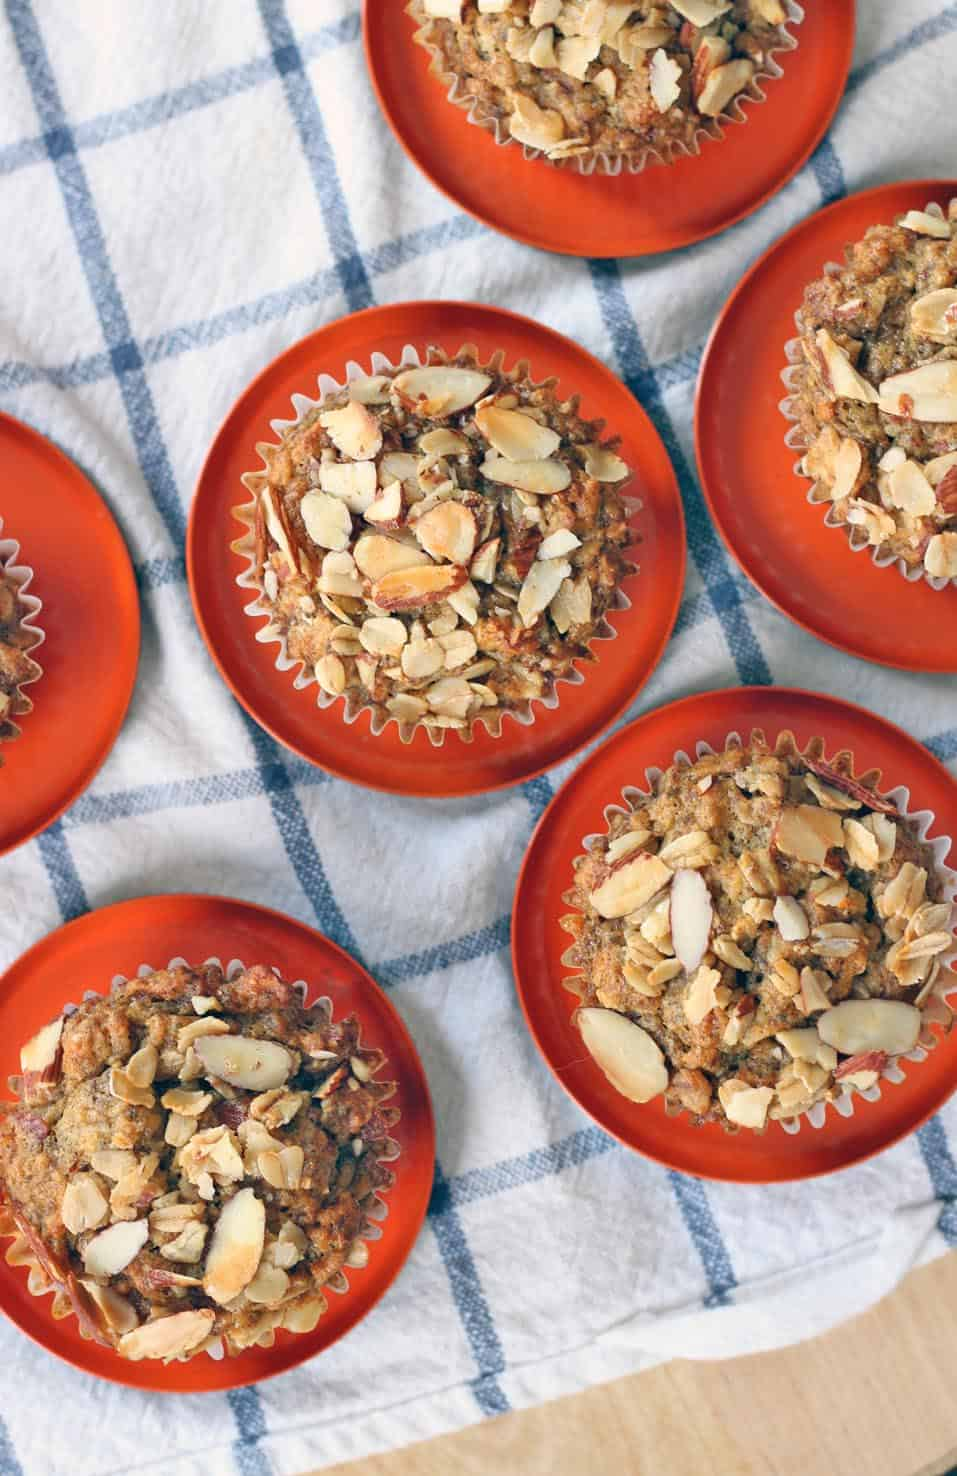 These vegan Maple Banana Oat and Nut muffins have no refined sugar and are 100% whole grain! Yep. These are delicious, nutrient-packed, guilt-free muffins, so you can feel good about having one or three for breakfast.